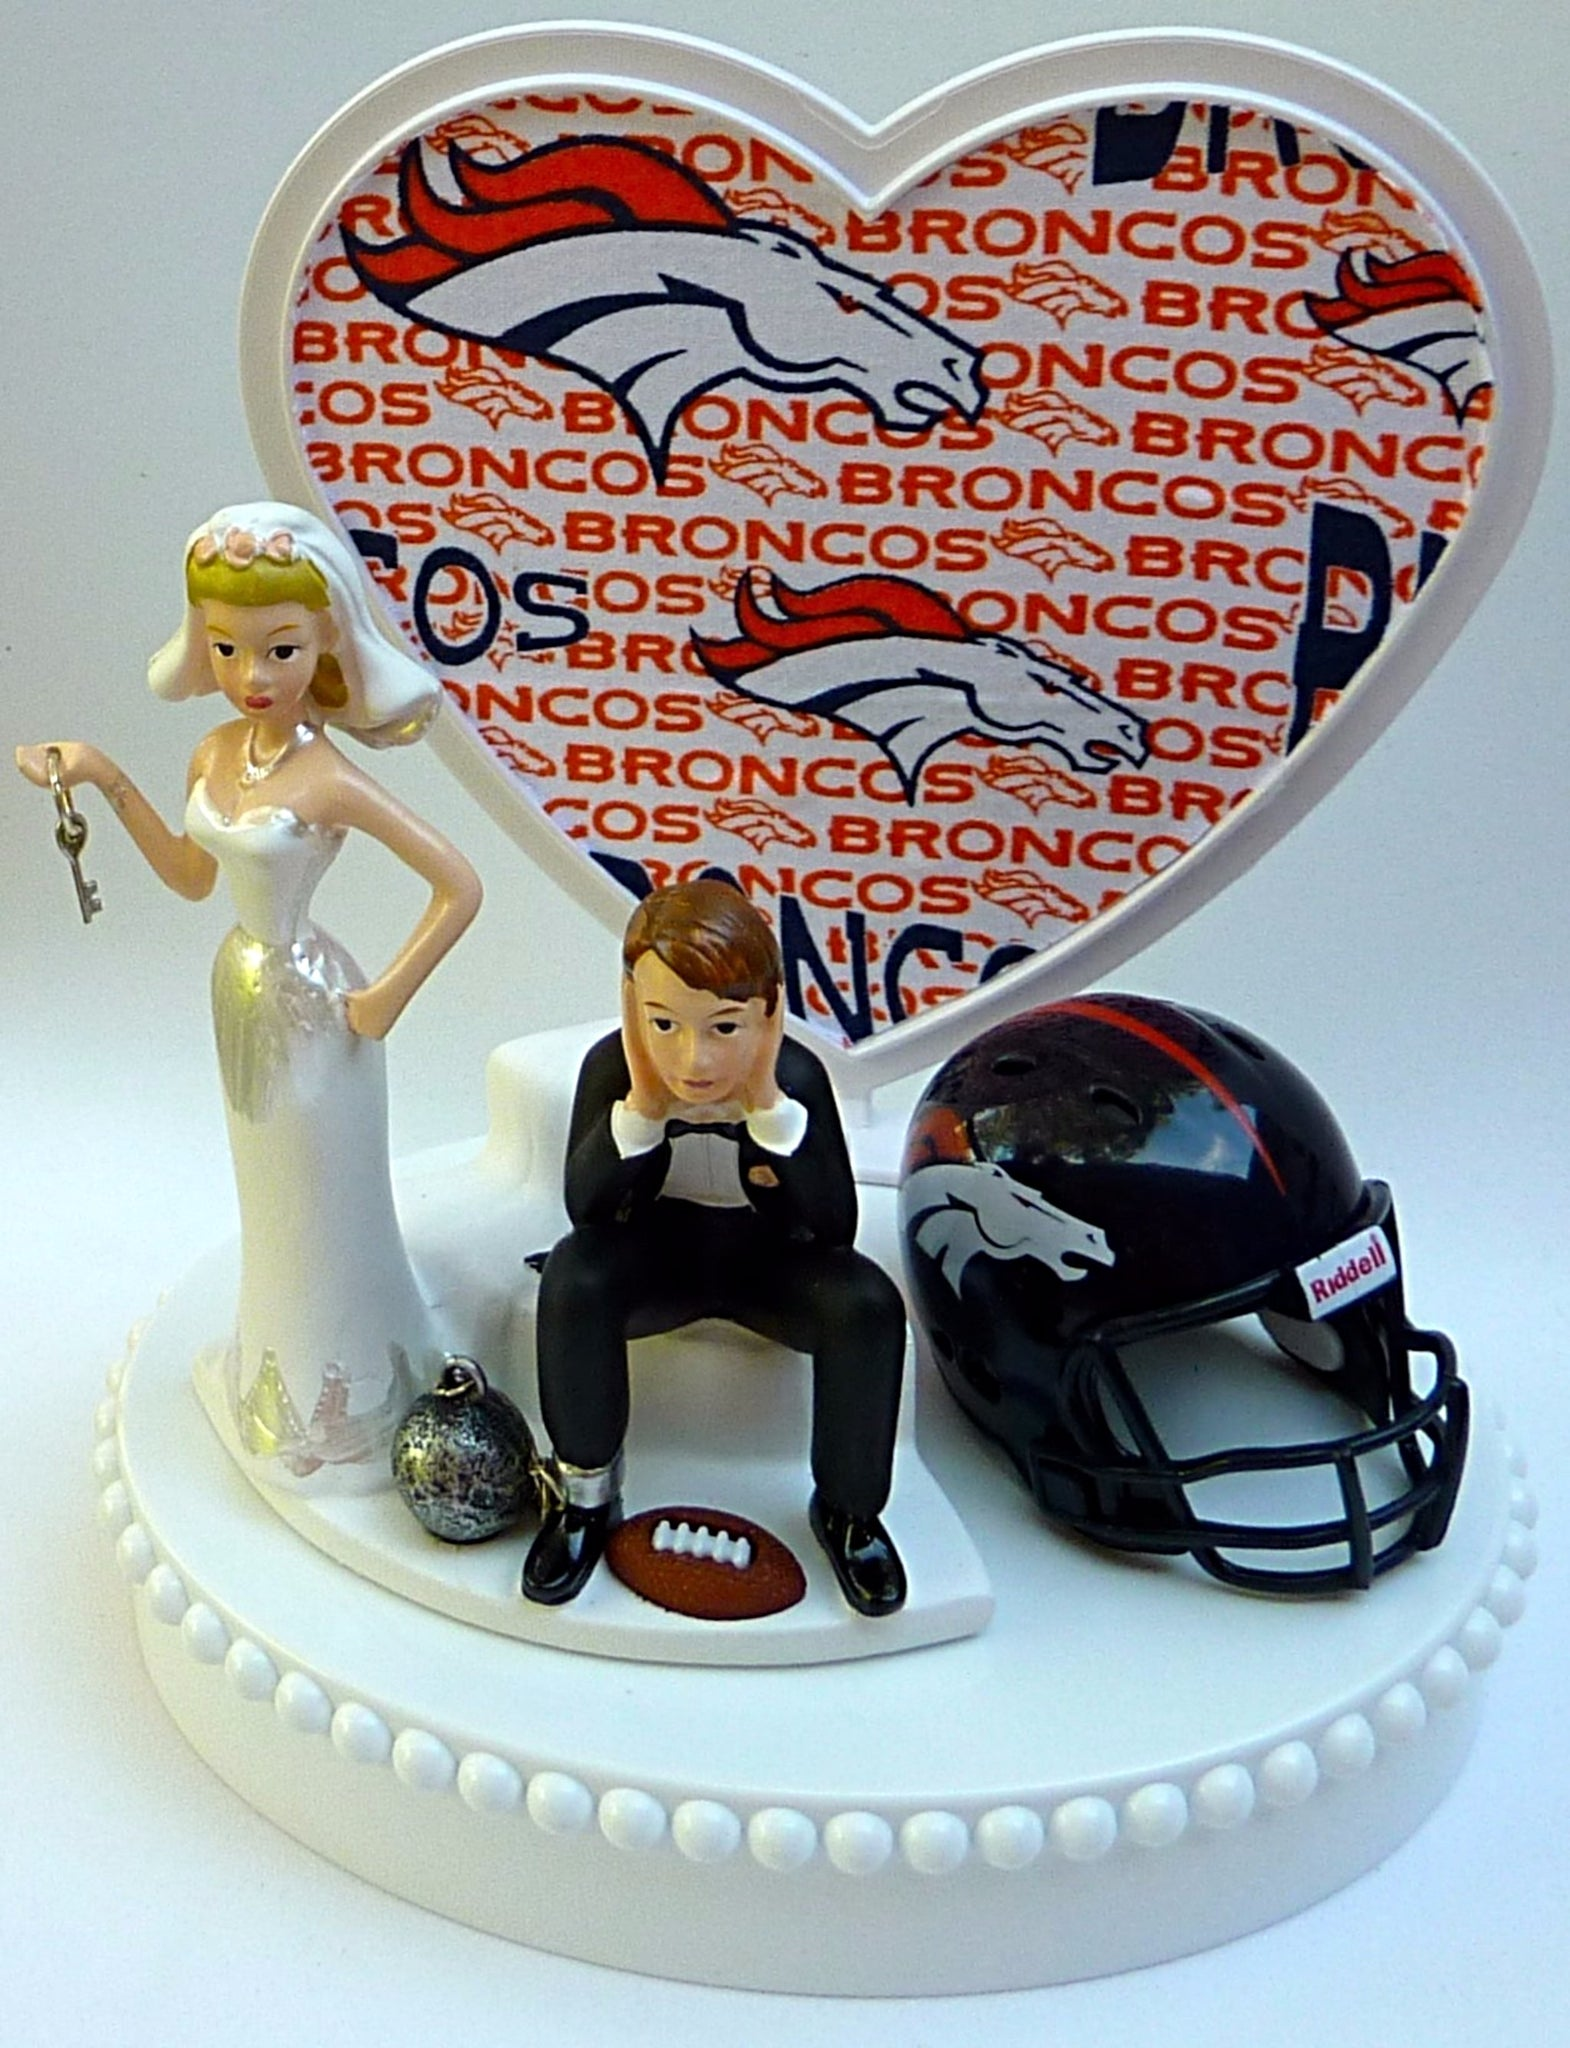 Denver Broncos wedding cake topper ball and chain humorous bride groom Turf topper reception humor